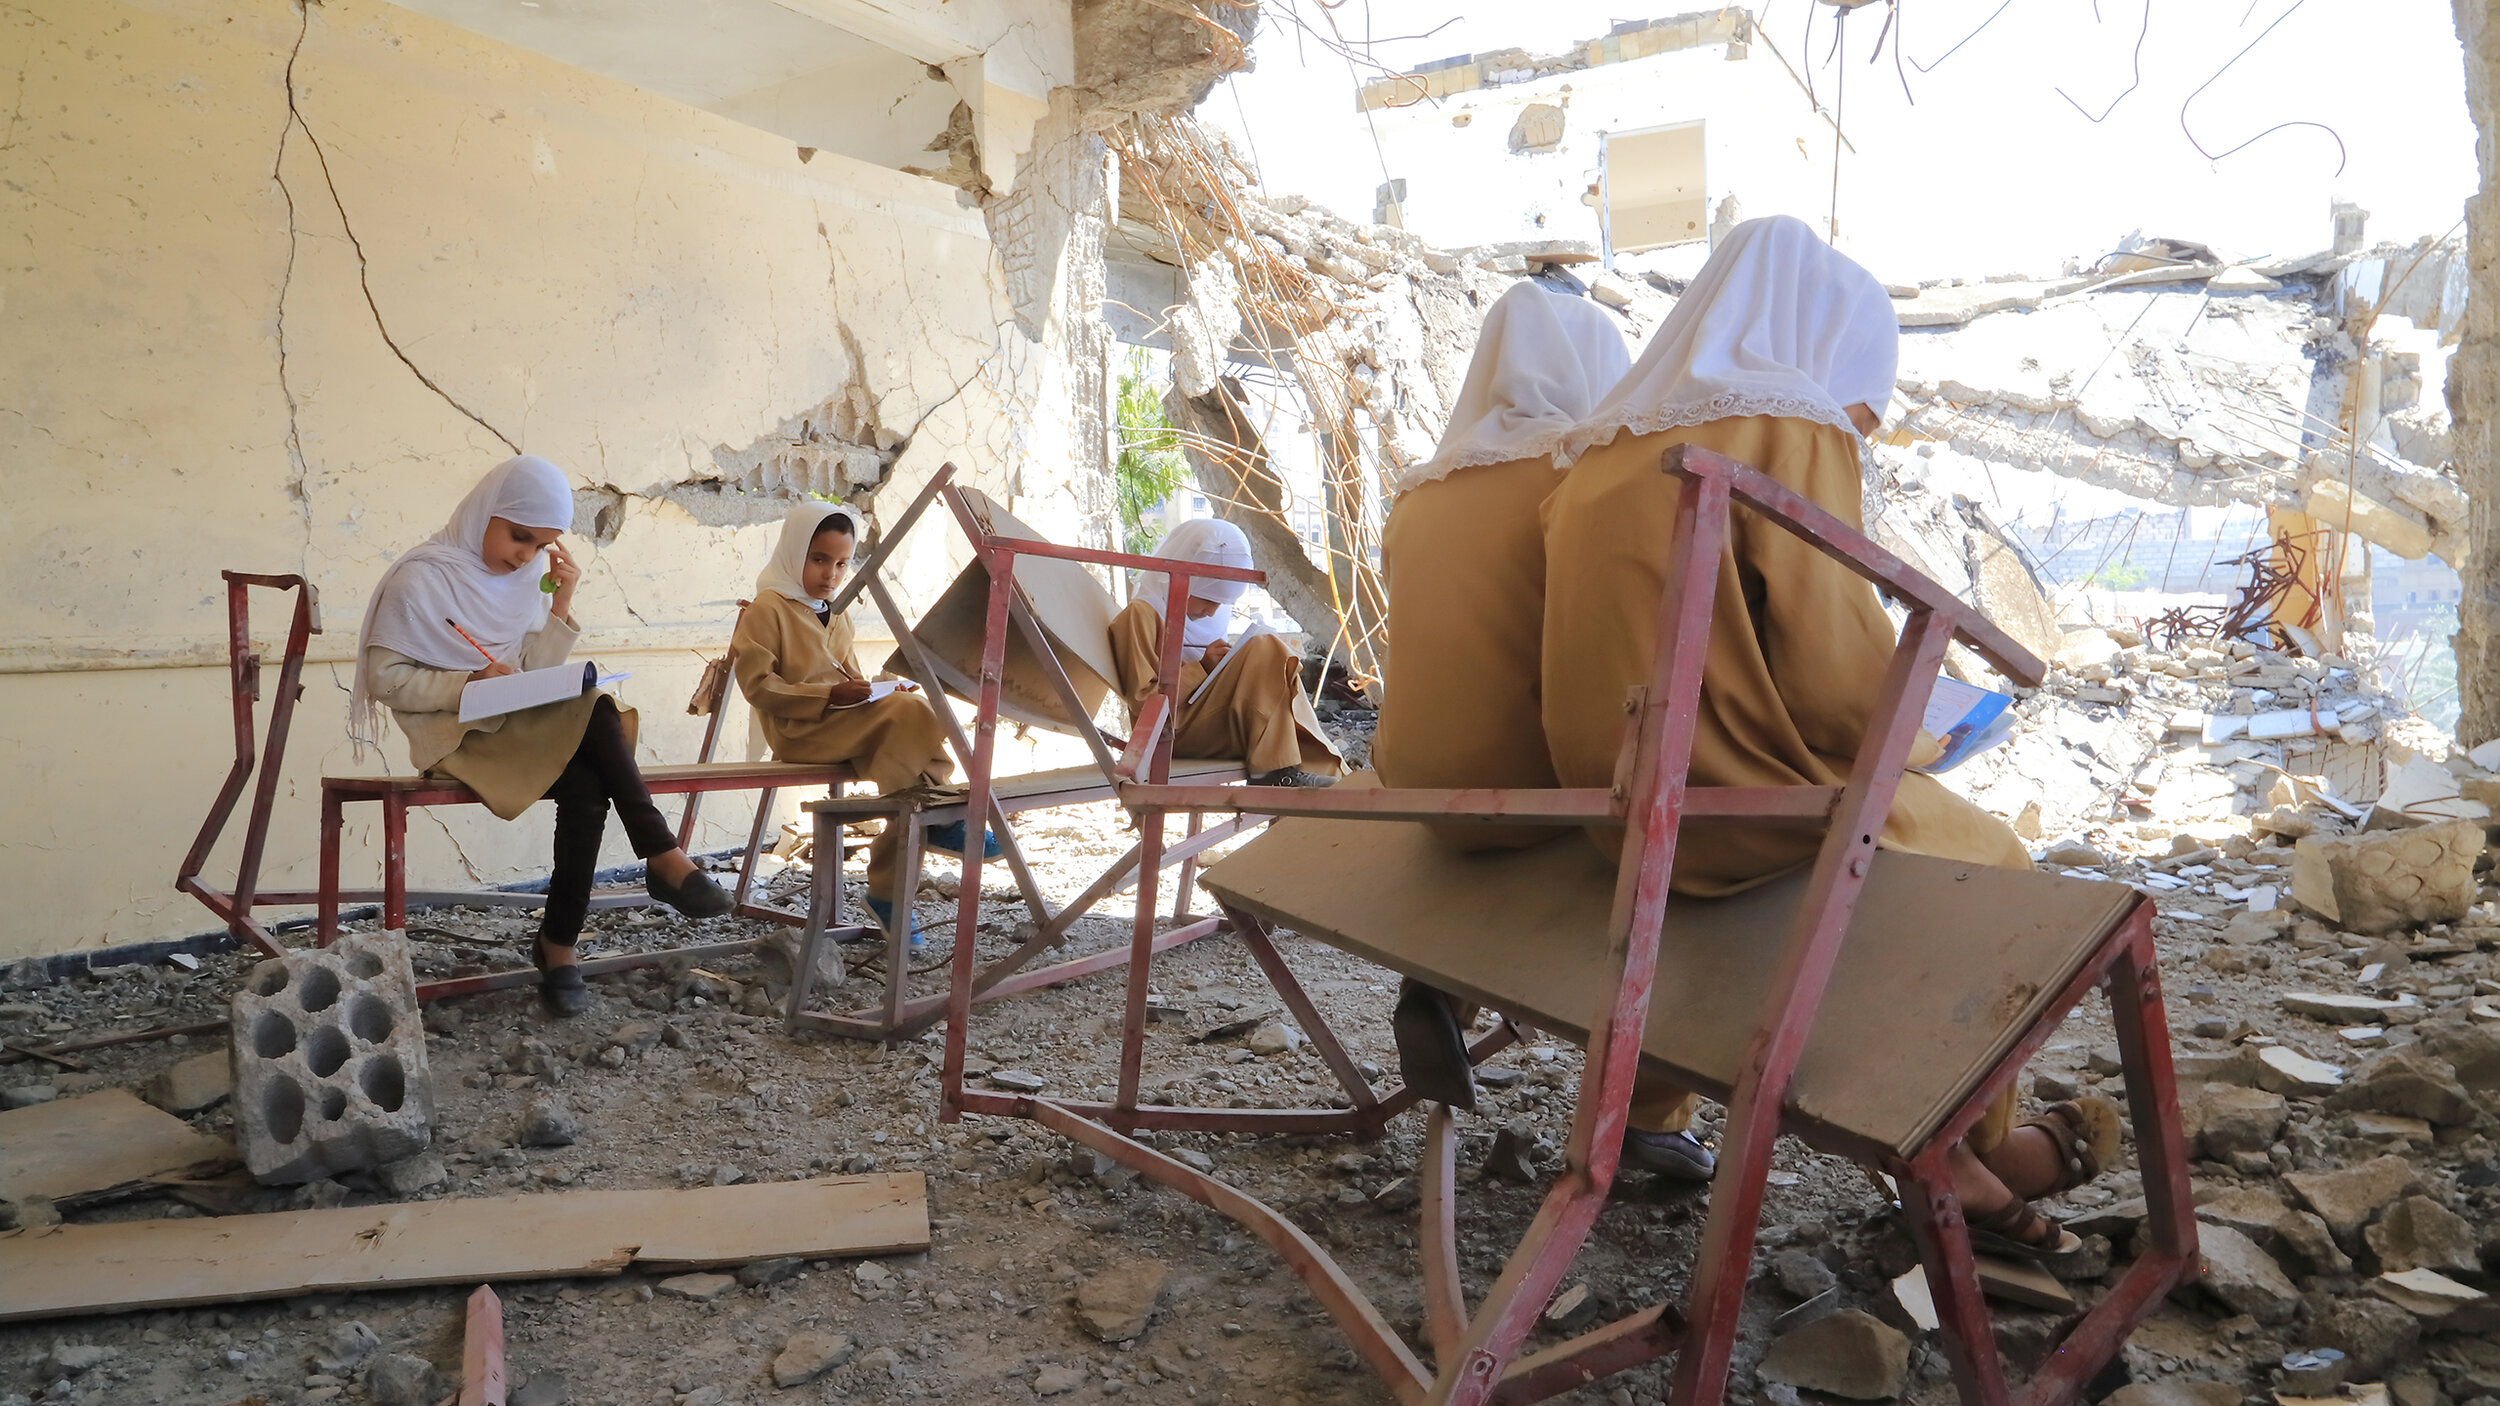 Girls study in a classroom destroyed by airstrikes in Taizz, Yemen. © 2019 UNICEF/UN1275387/Al-Sabri